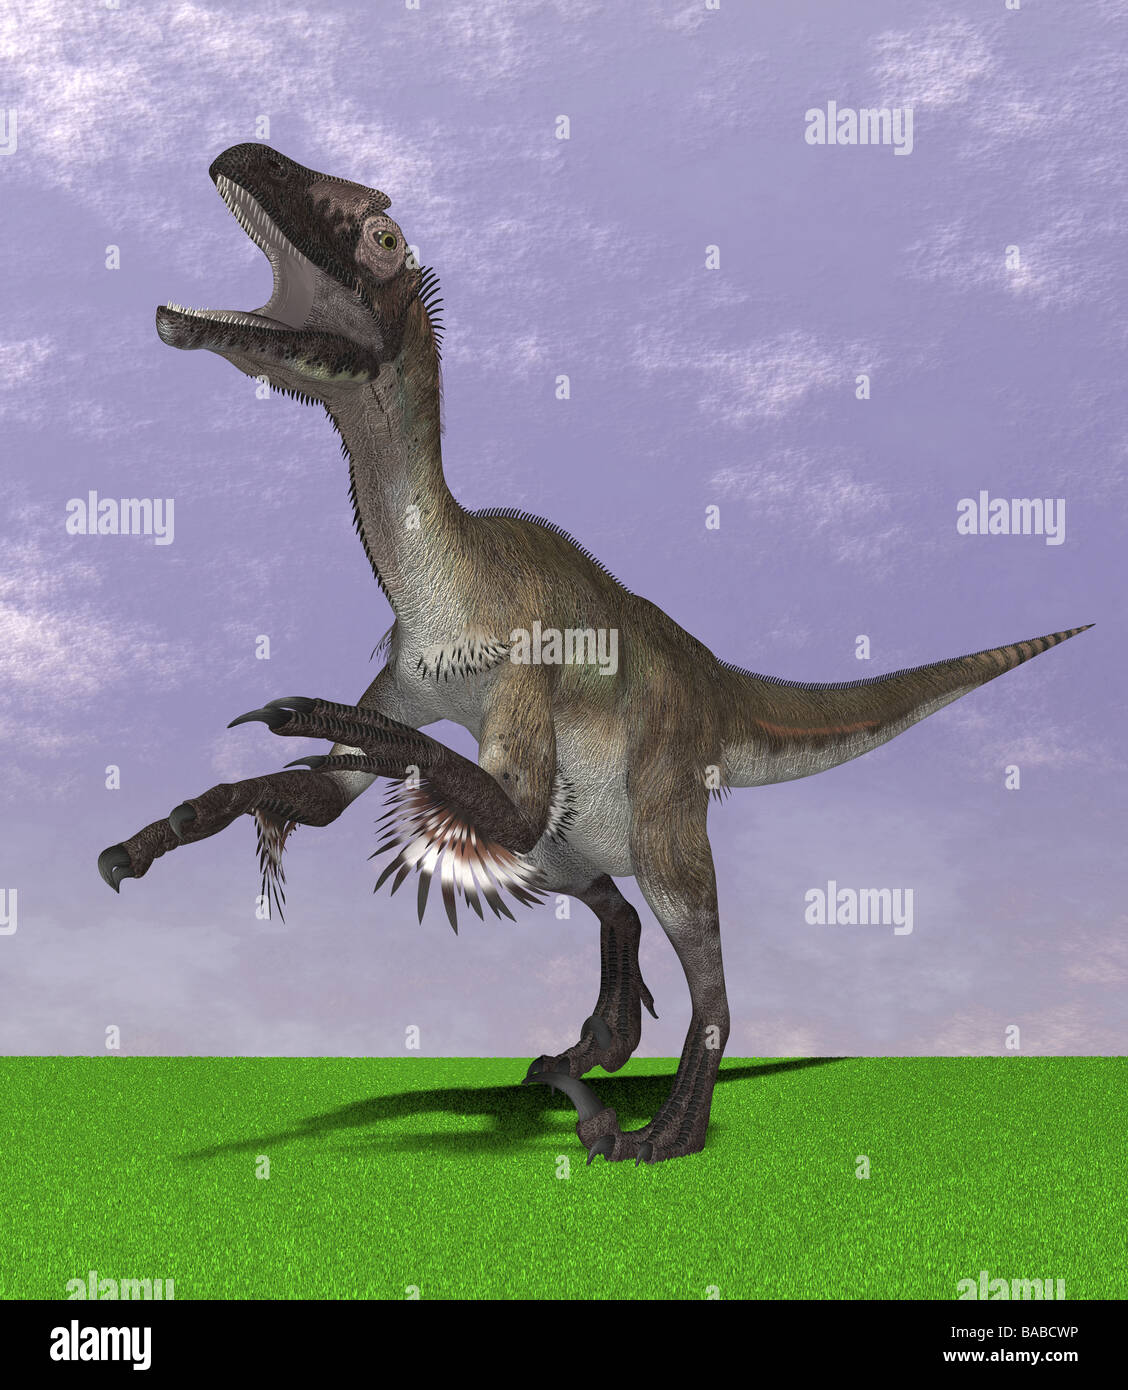 dinosaur UtahraptorStock Photo